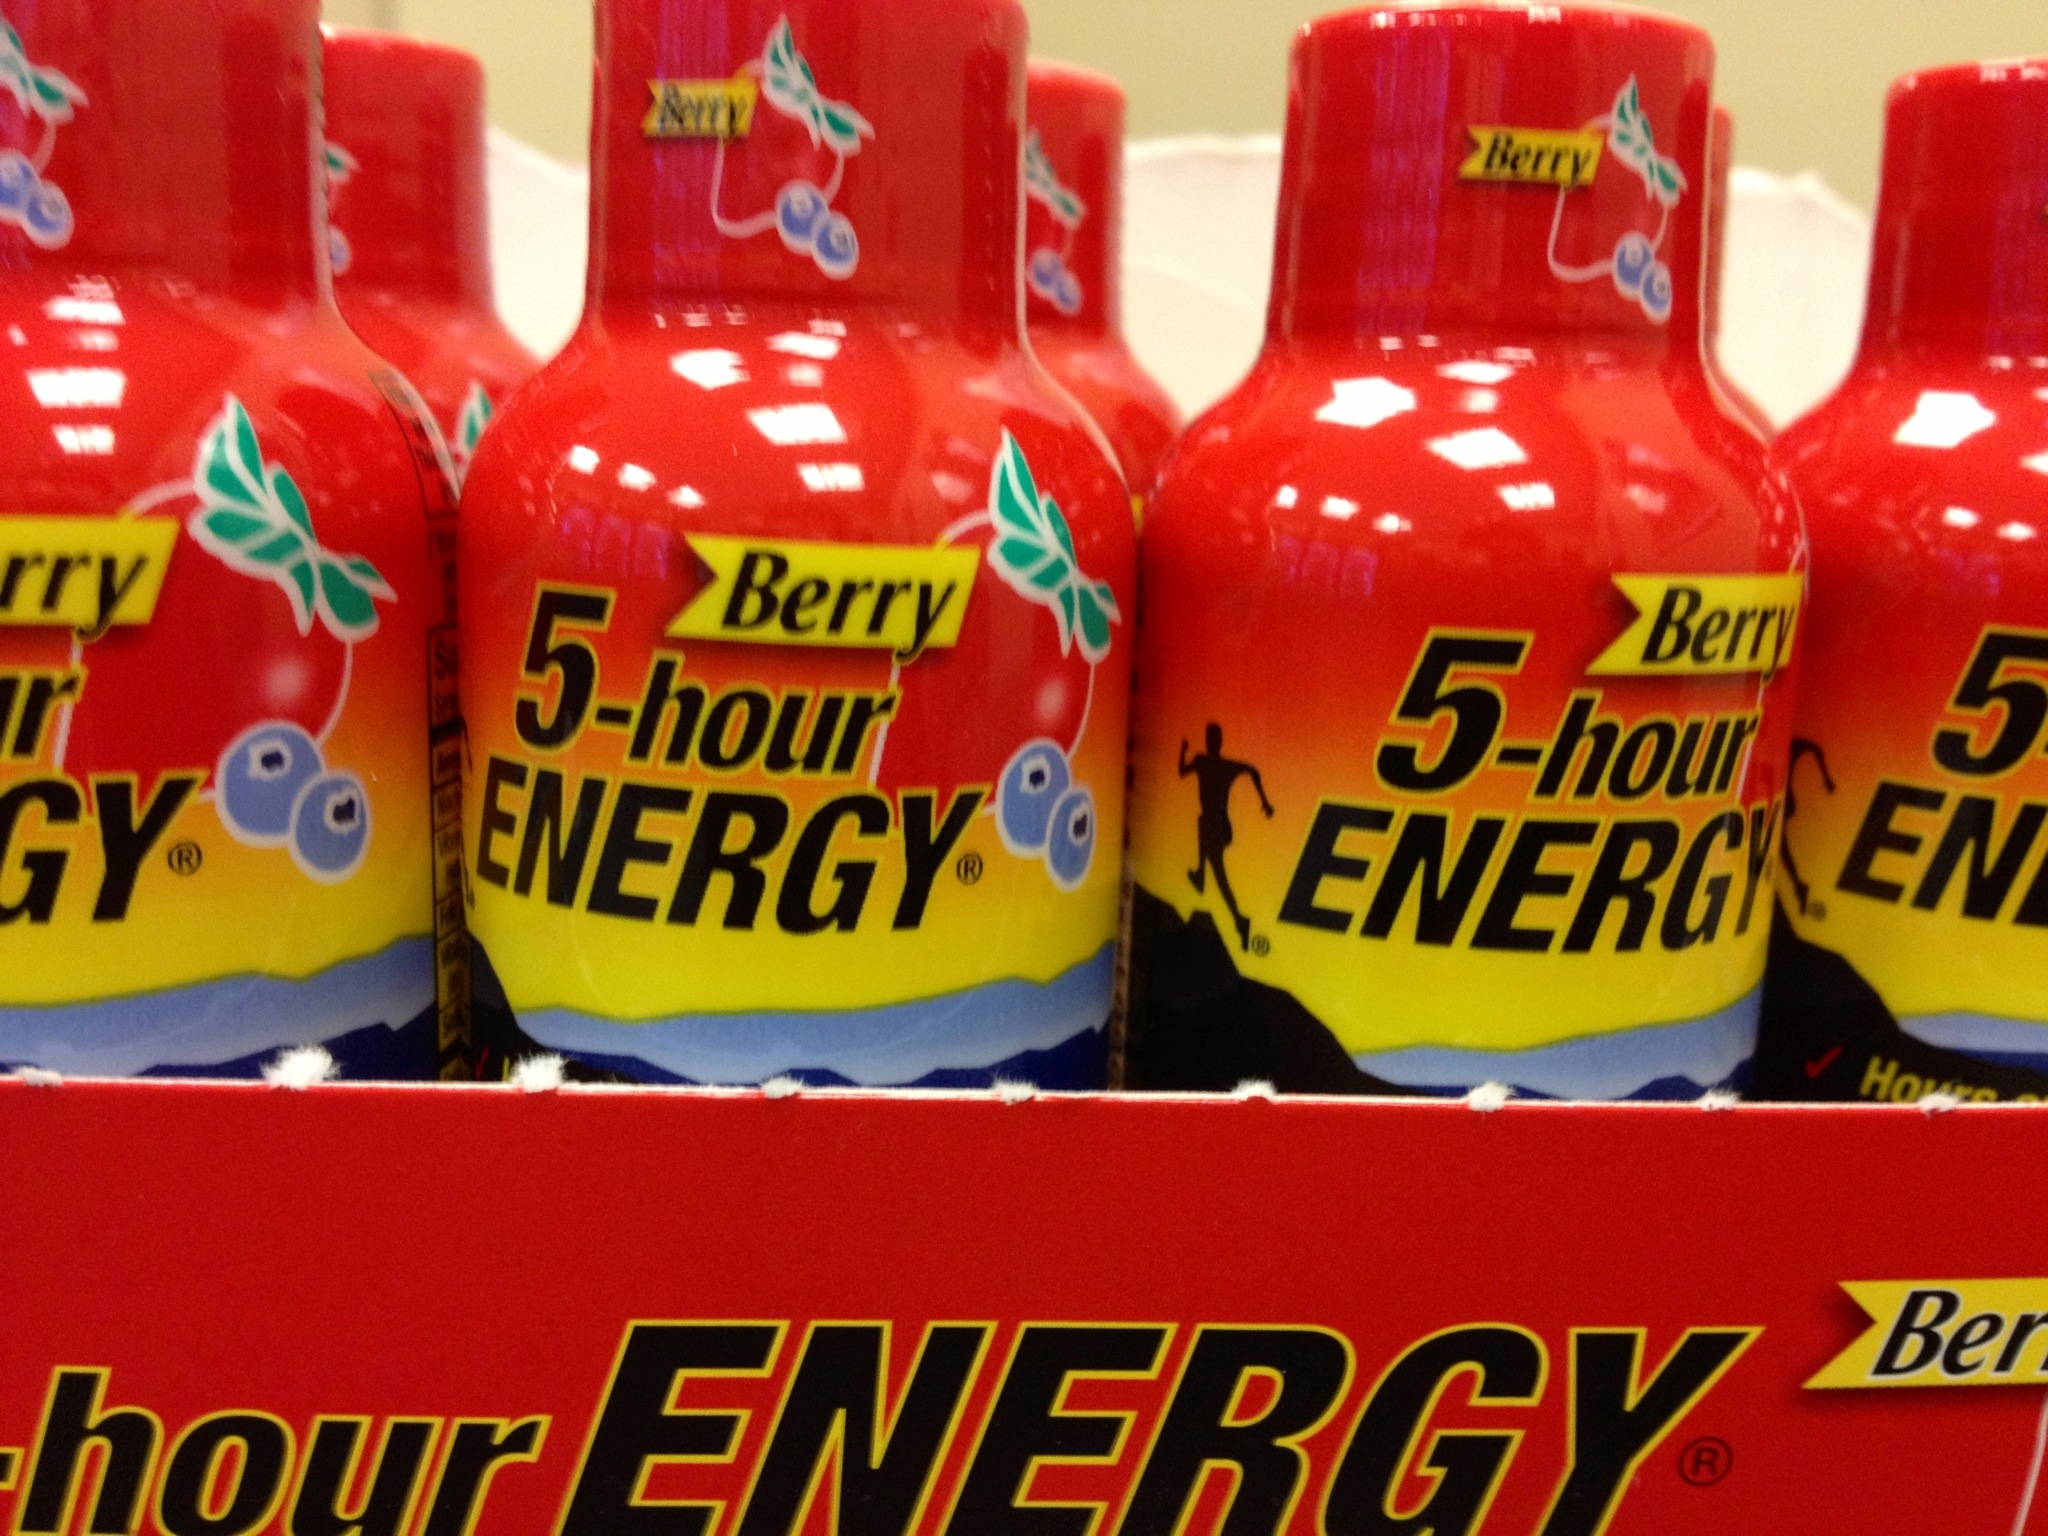 5-Hour Energy linked to 13 deaths